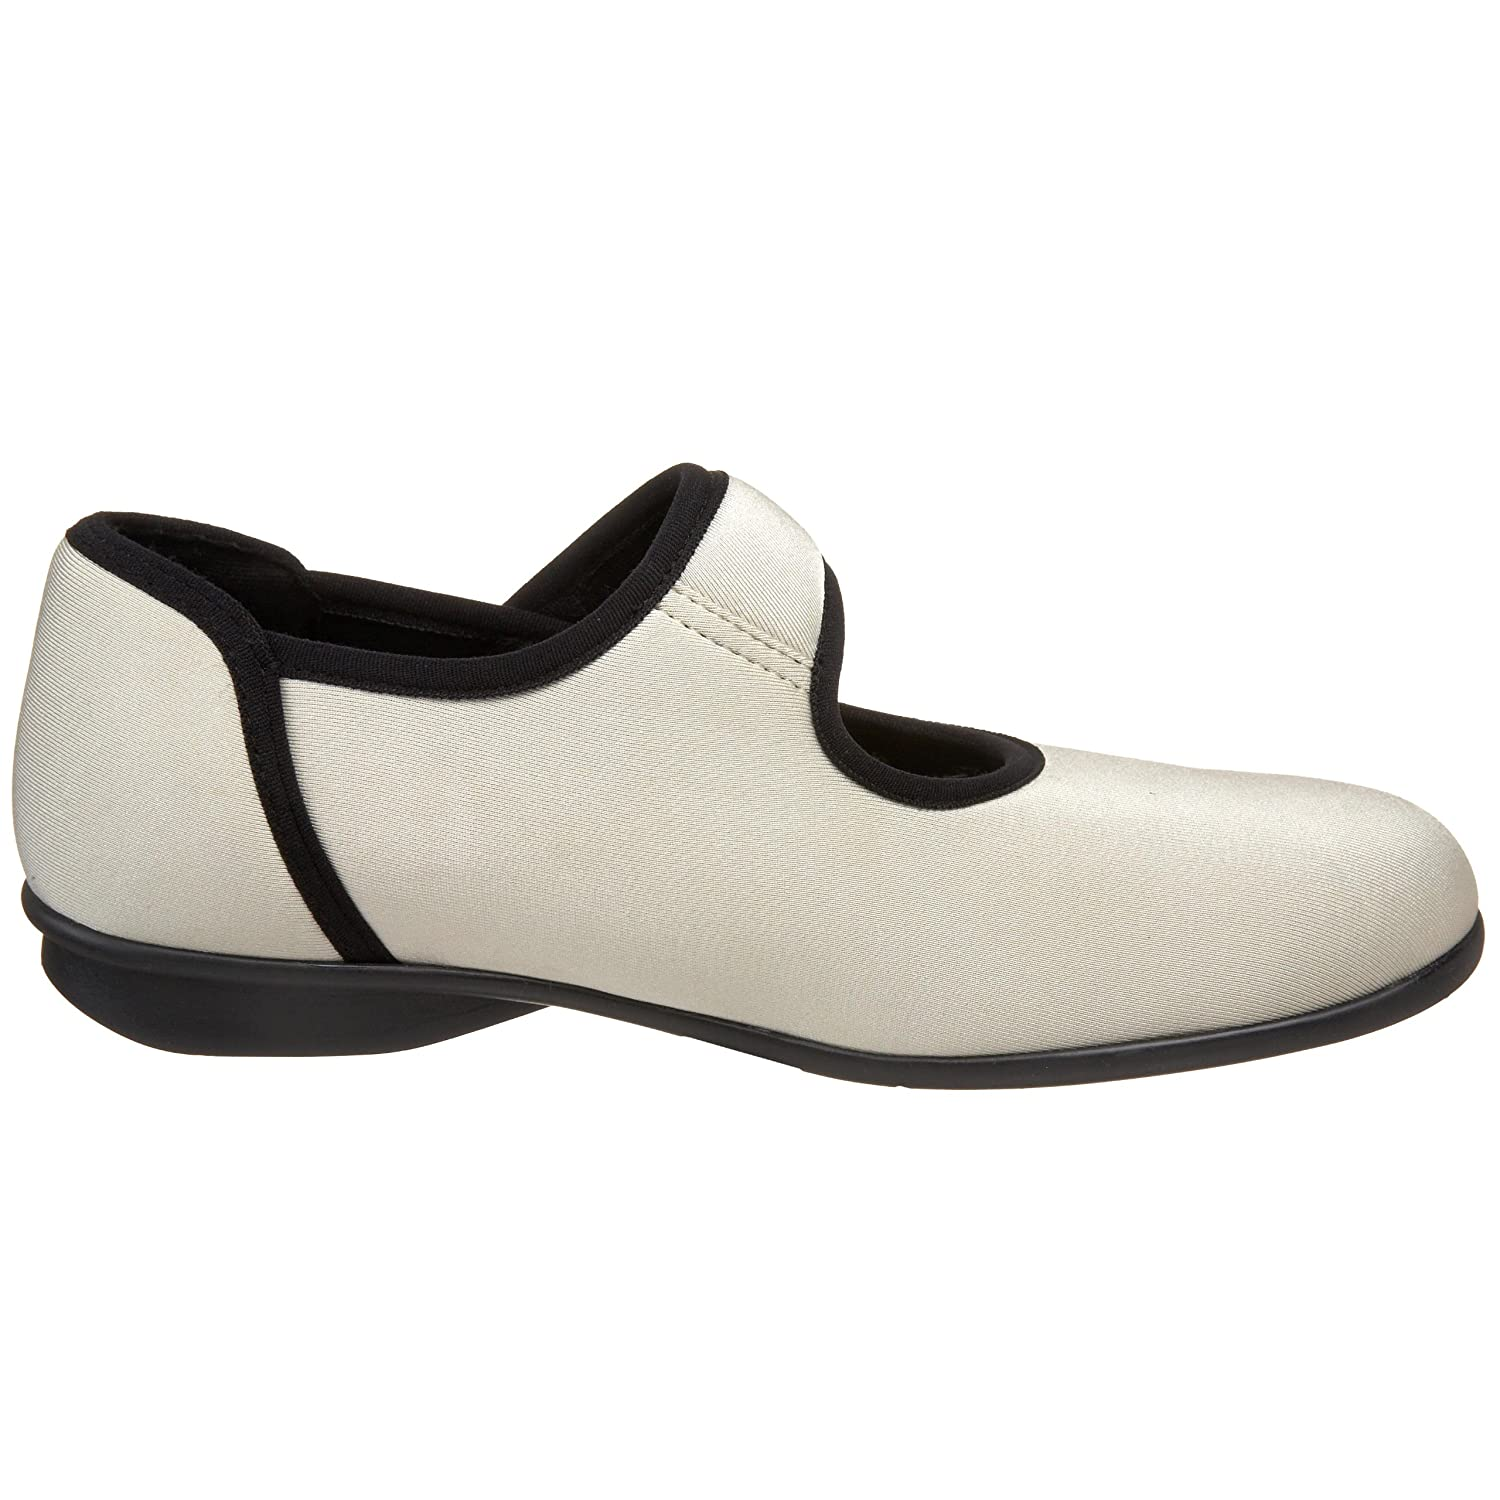 Drew Jane Shoe Women's Jada Mary Jane Drew B002VPCJZQ 6.5 W US|Ivory Stretch e7fa36